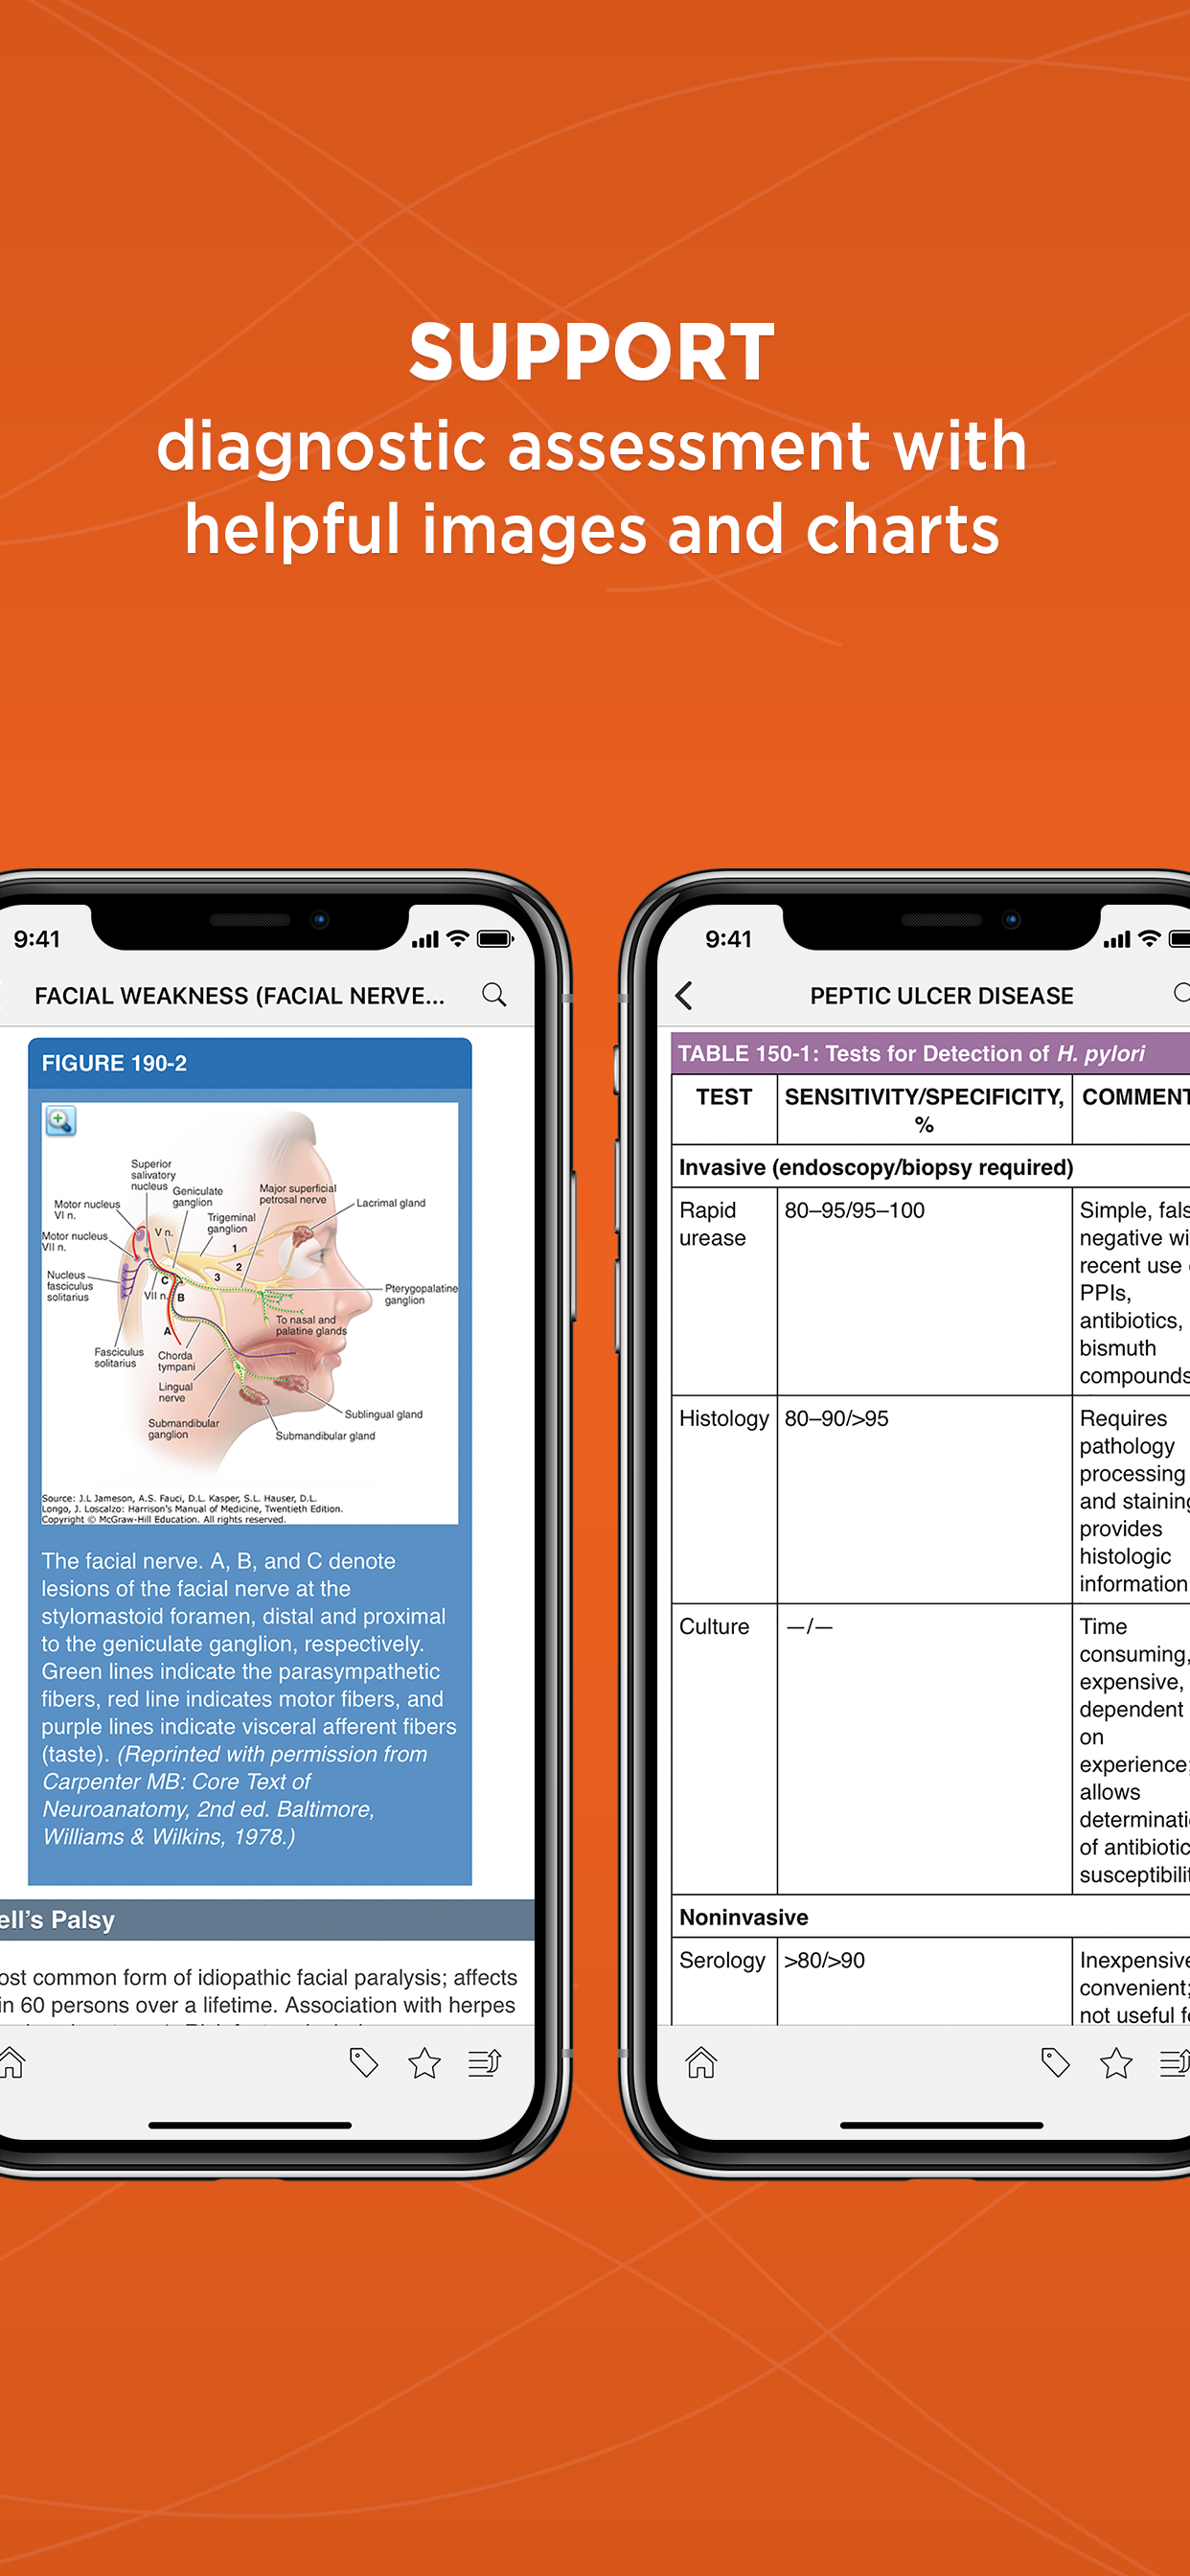 Unbound medicine harrisons manual of medicine app for ipad unbound medicine harrisons manual of medicine app for ipad iphone ipod touch android phone android tablet fandeluxe Gallery